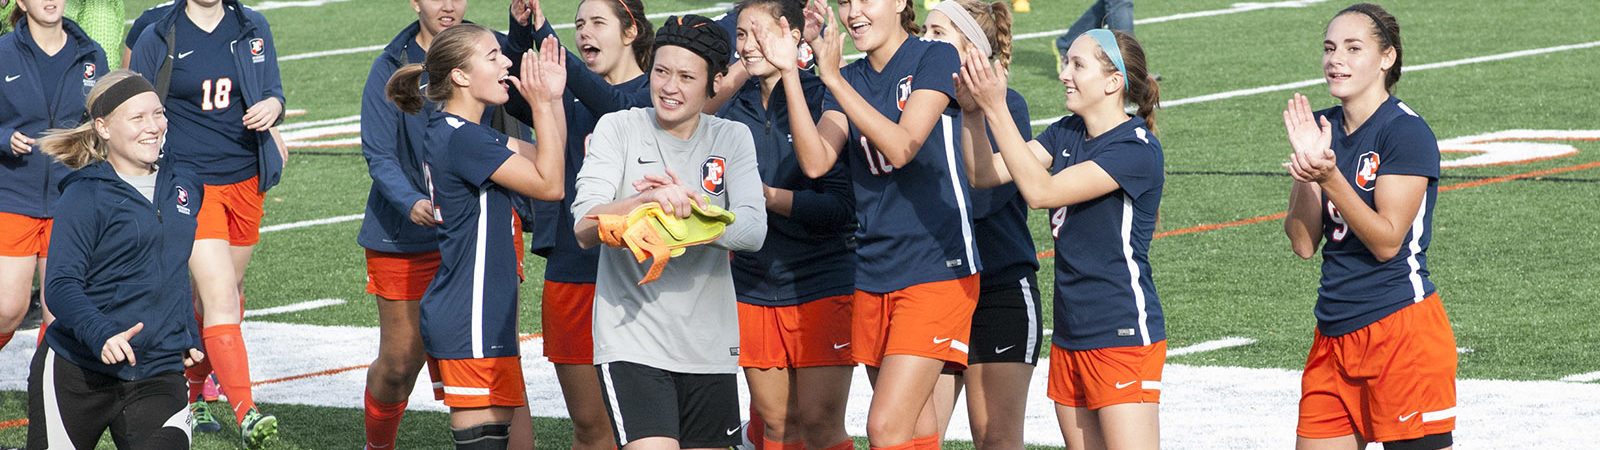 The women's soccer team celebrates winning in the playoffs